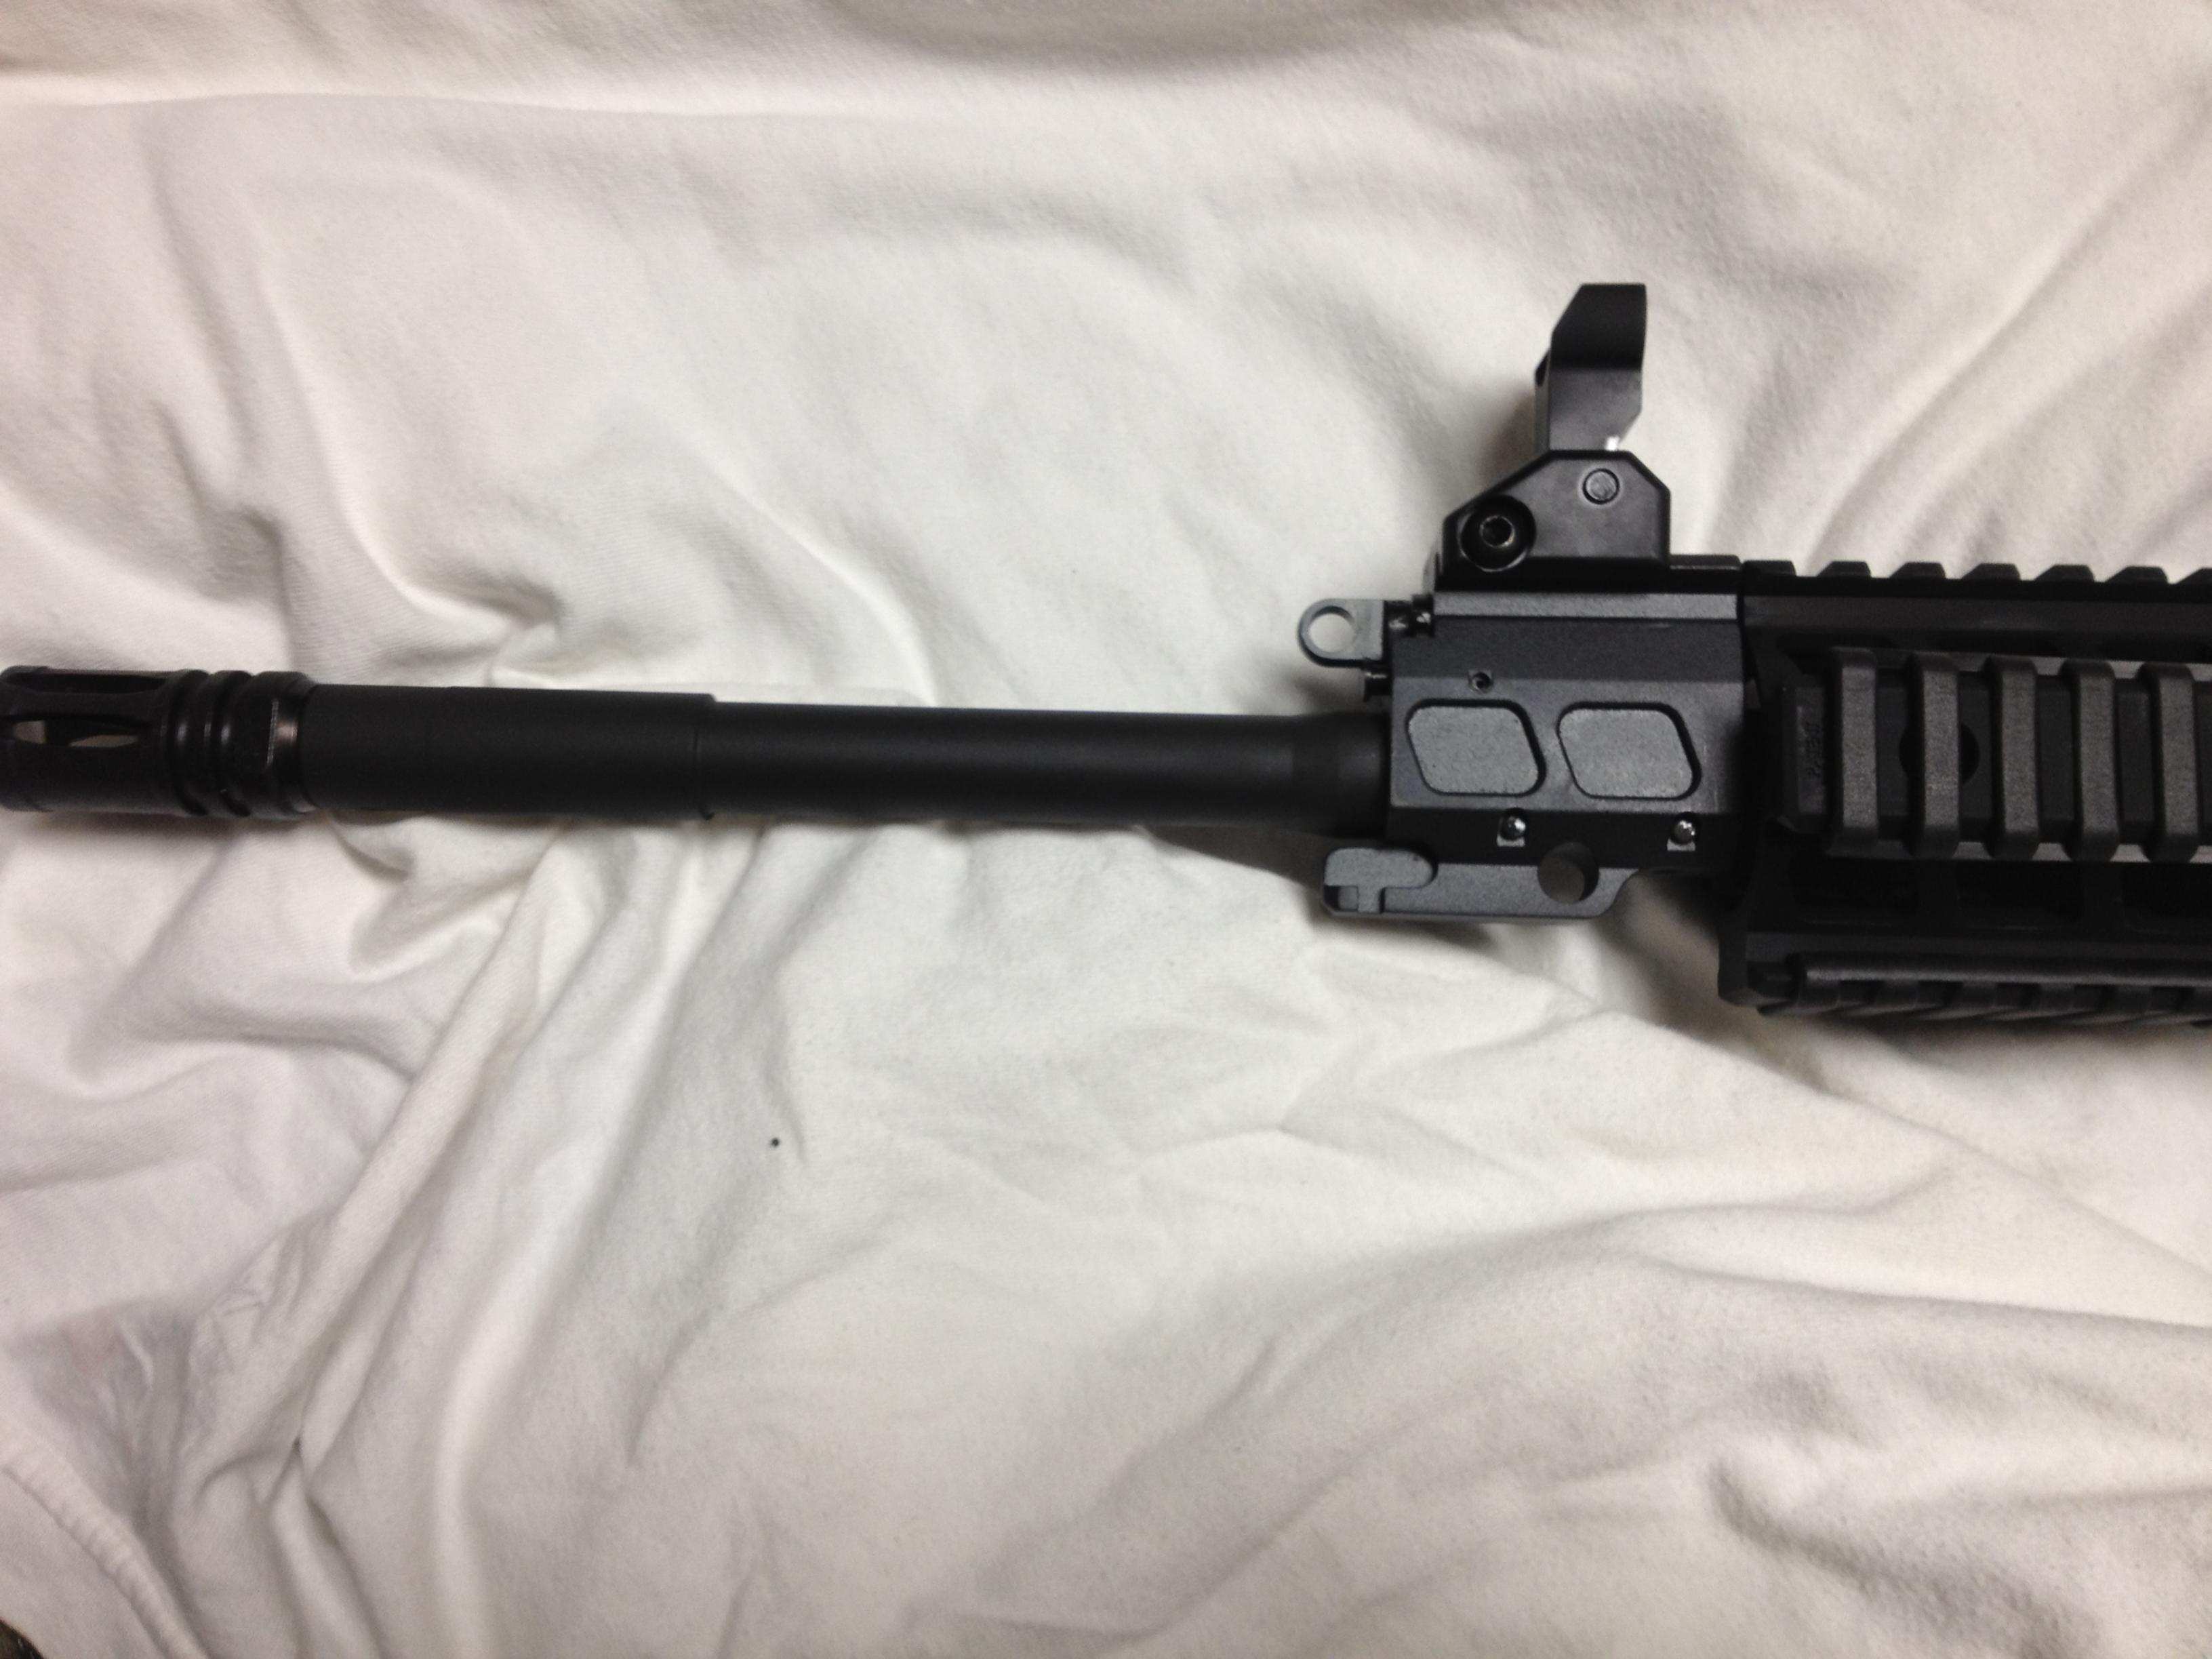 Just took delivery of my new 516 SIG AR! Sweet!!-img_0511.jpg